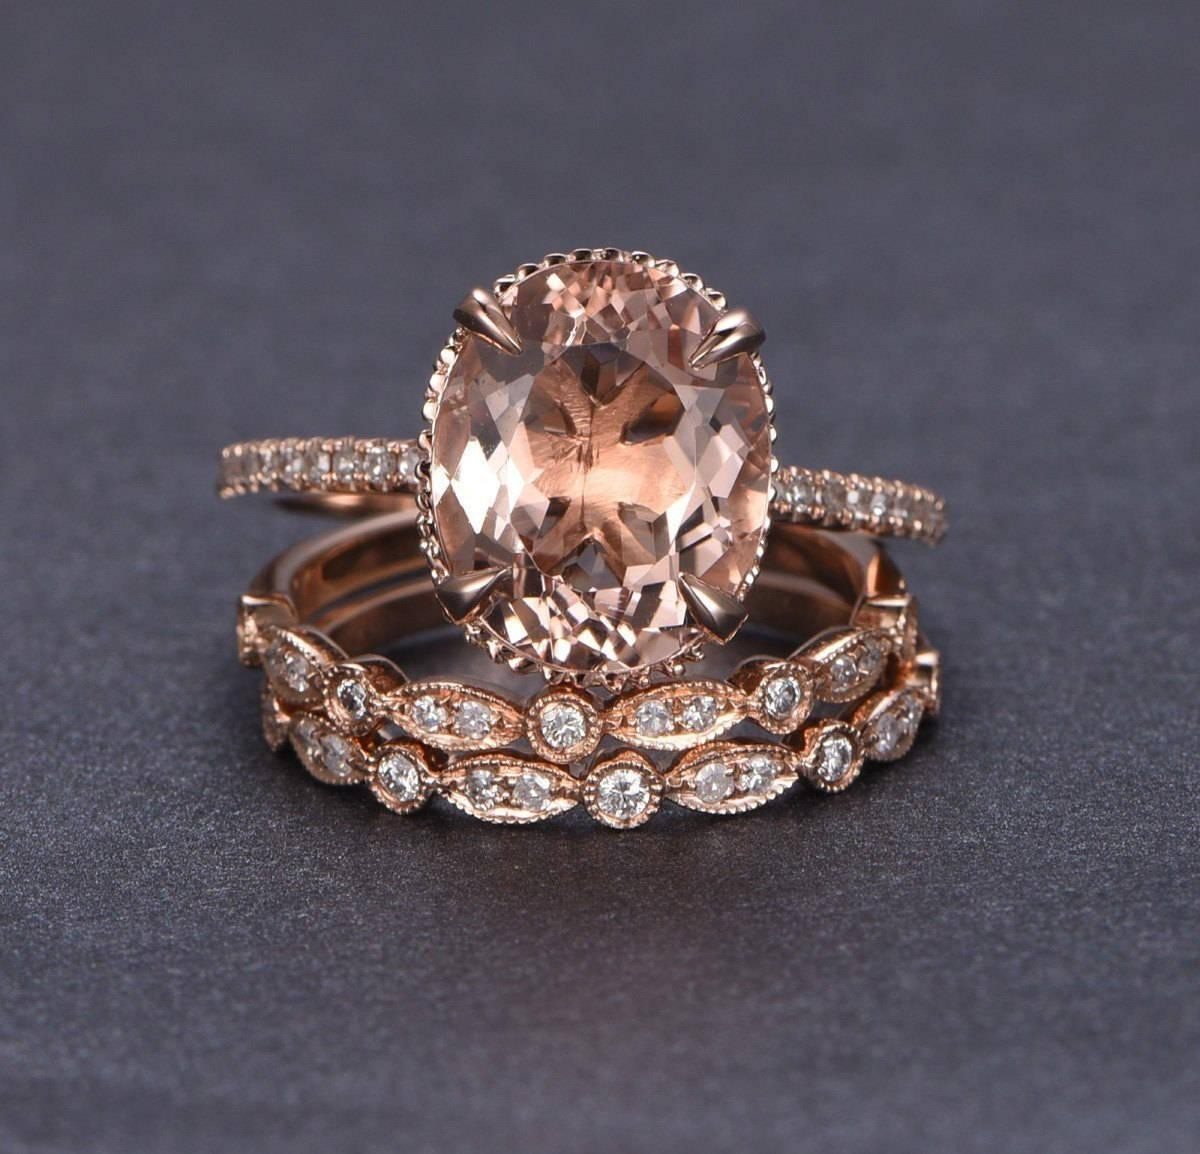 limited time sale 2 carat morganite and diamond trio ring set in 14k rose gold with one engagement ring and 2 wedding bands - Rose Wedding Rings